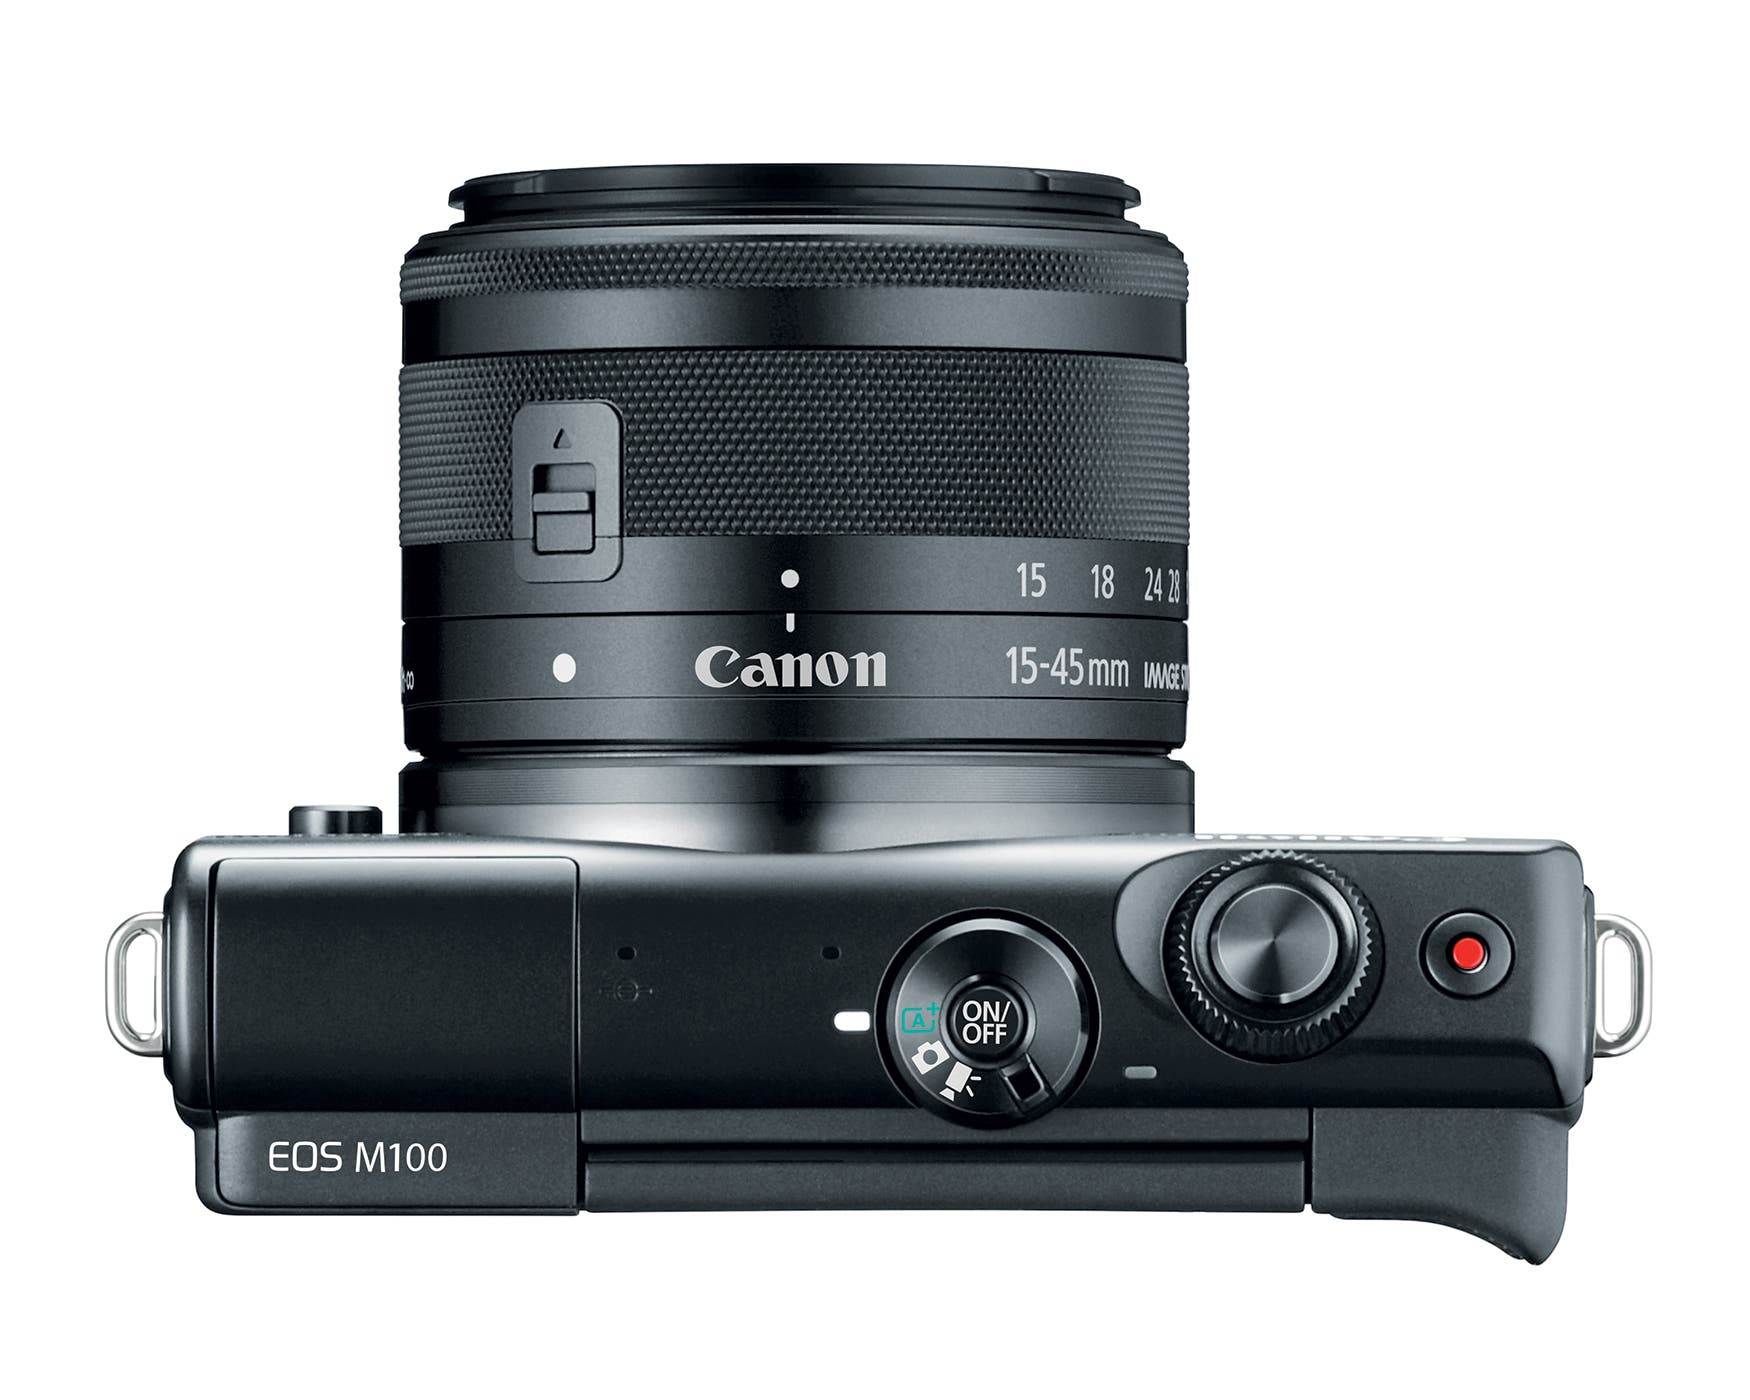 The Canon Eos M100 Isnt For More Serious Photographer M10 Kit 15 45 22mm Video Mode Record Full Hd 1080 60p Or Picturesque Time Lapse Movies With Push Of A Button Use Hybrid Auto To Pull Still Frames Form